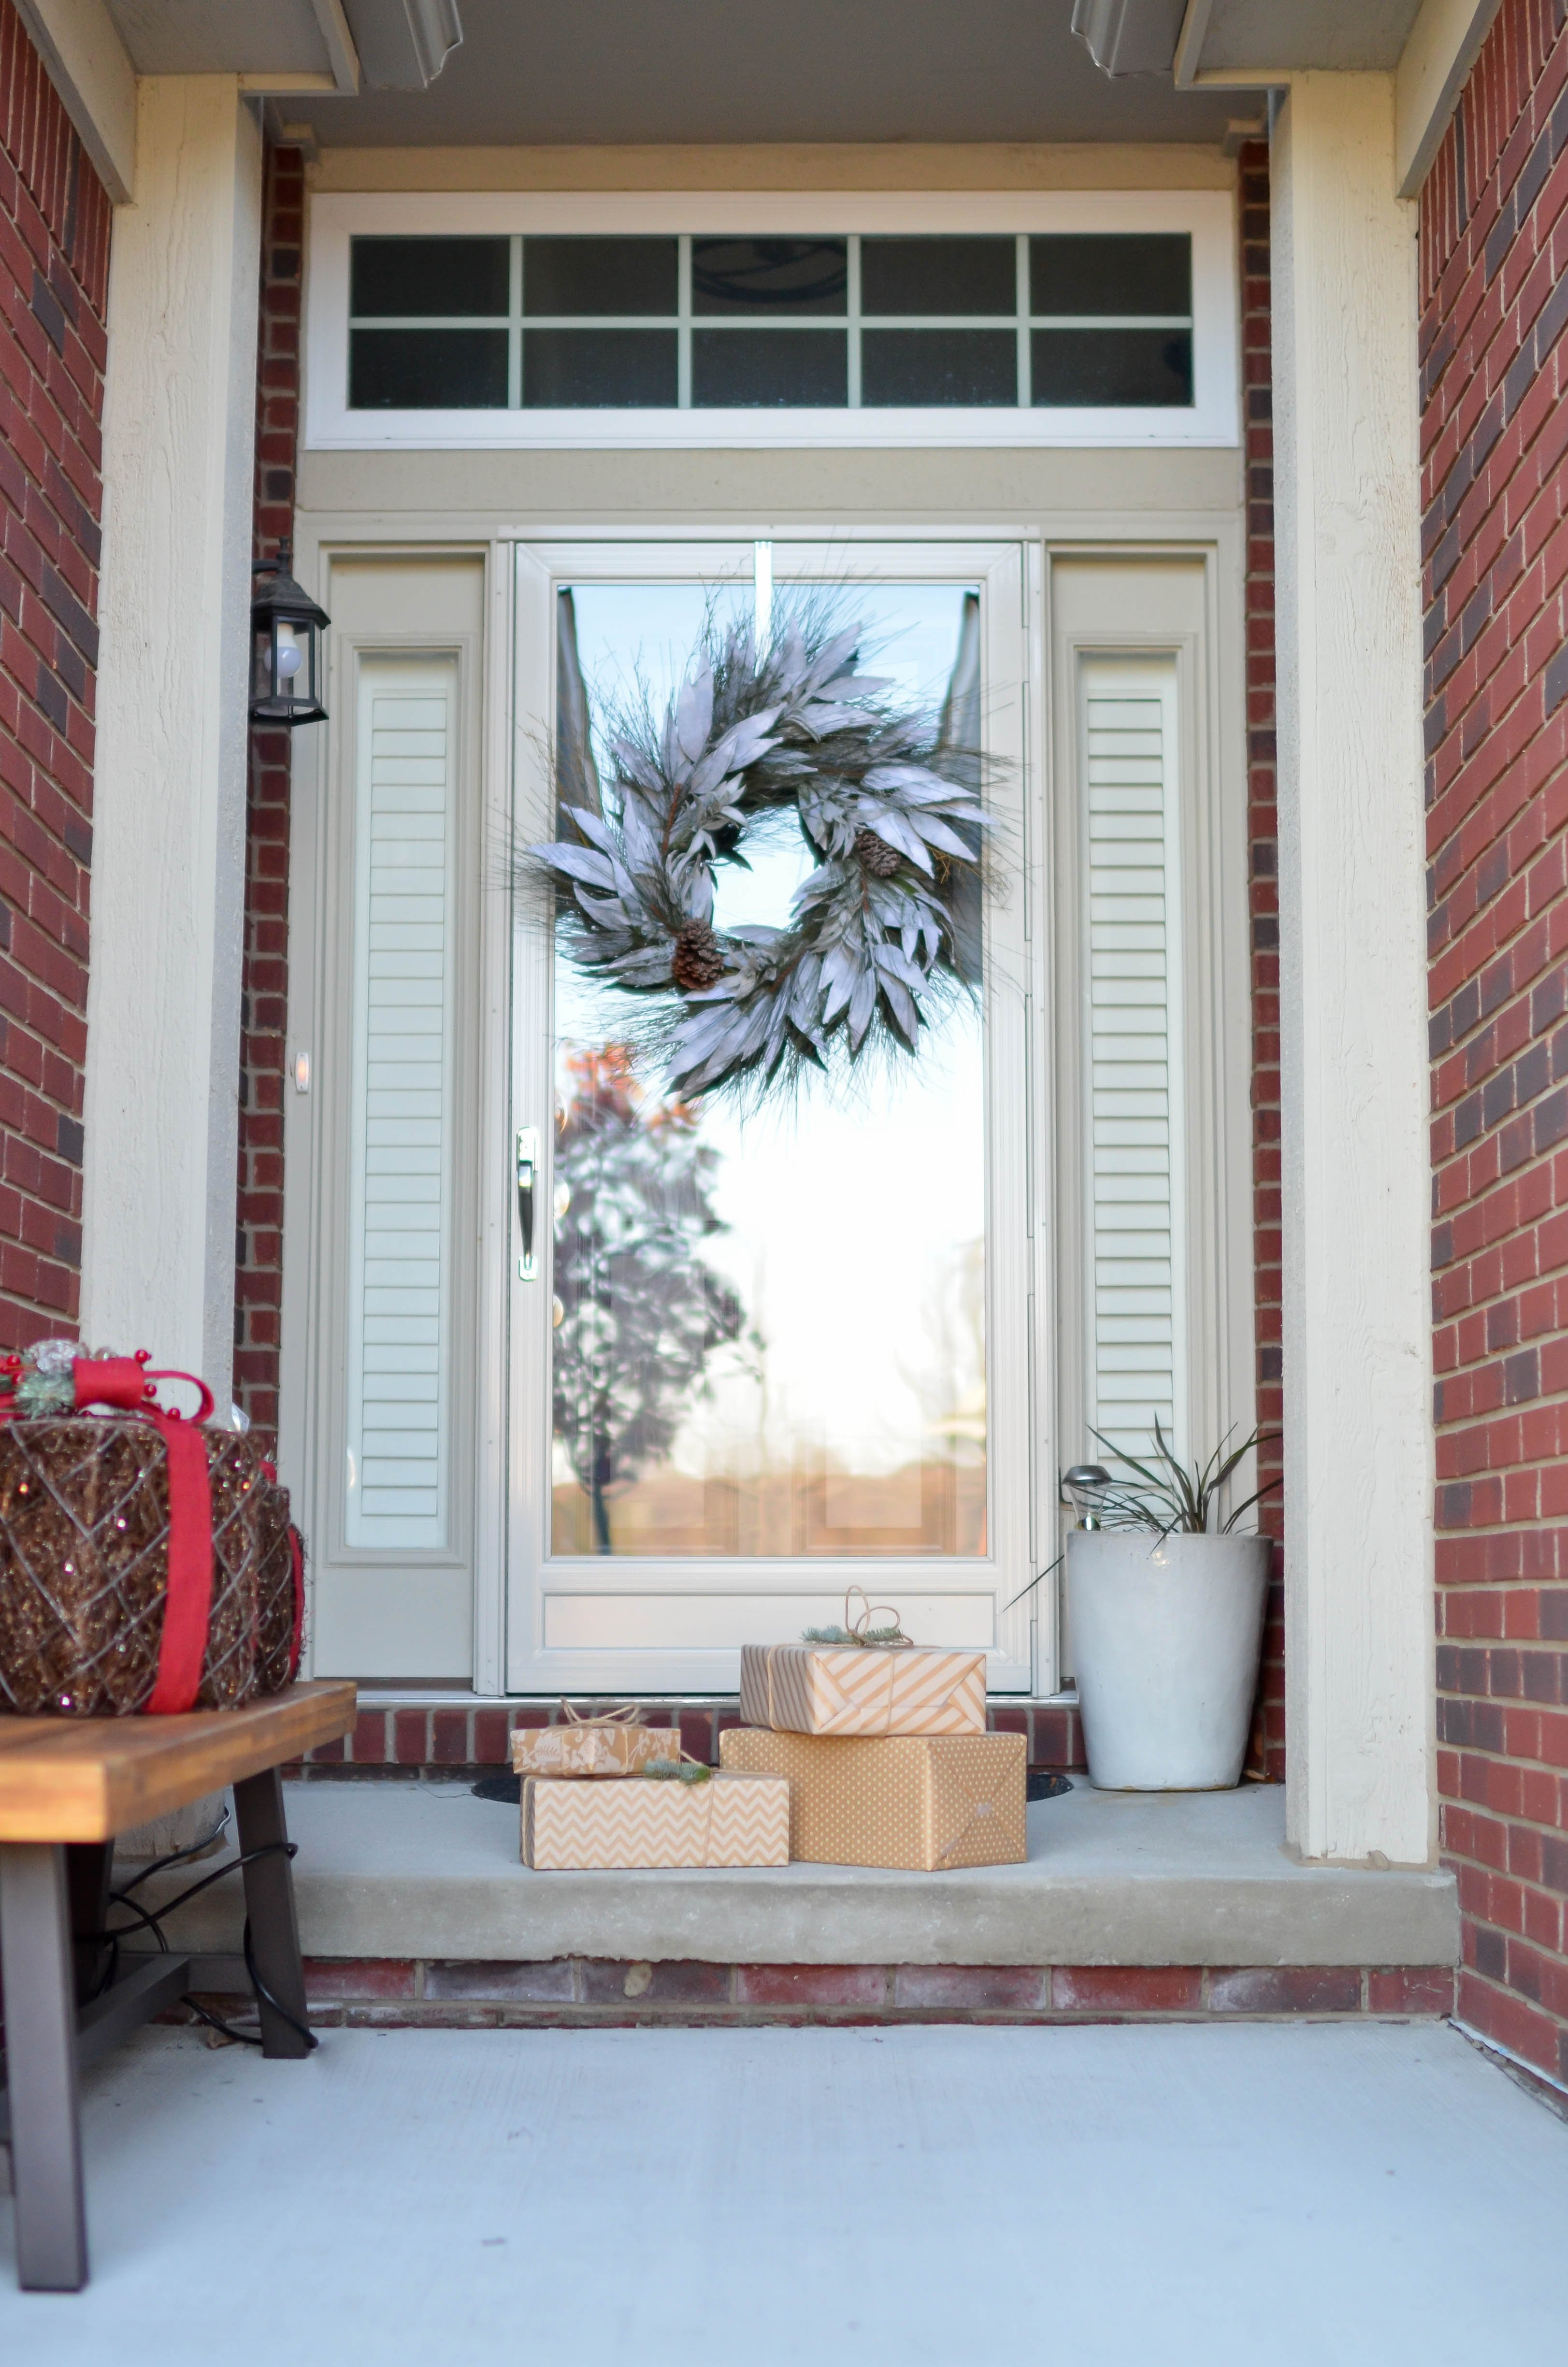 Decorating Your Front Door During the Holiday Season